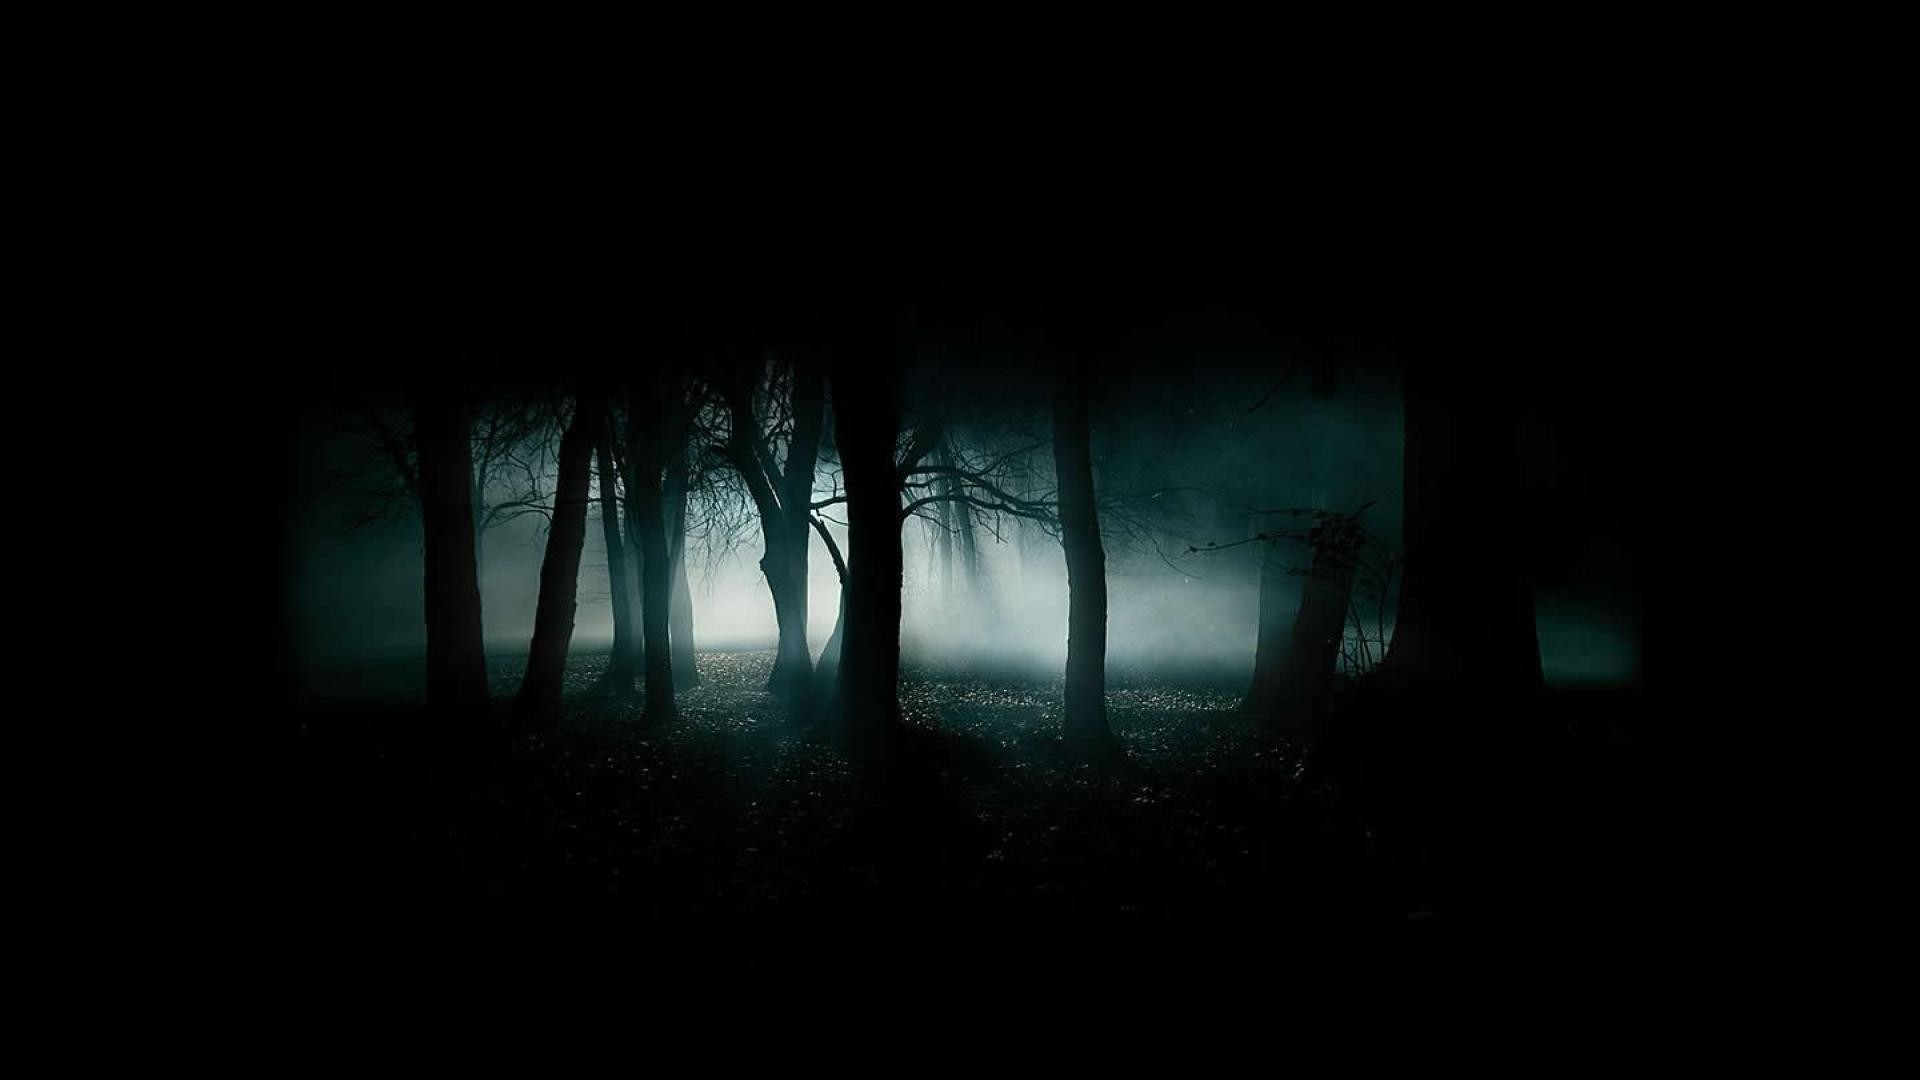 1920x1080 Scary Woods Desktop Background HD Wallpaper - Beraplan.